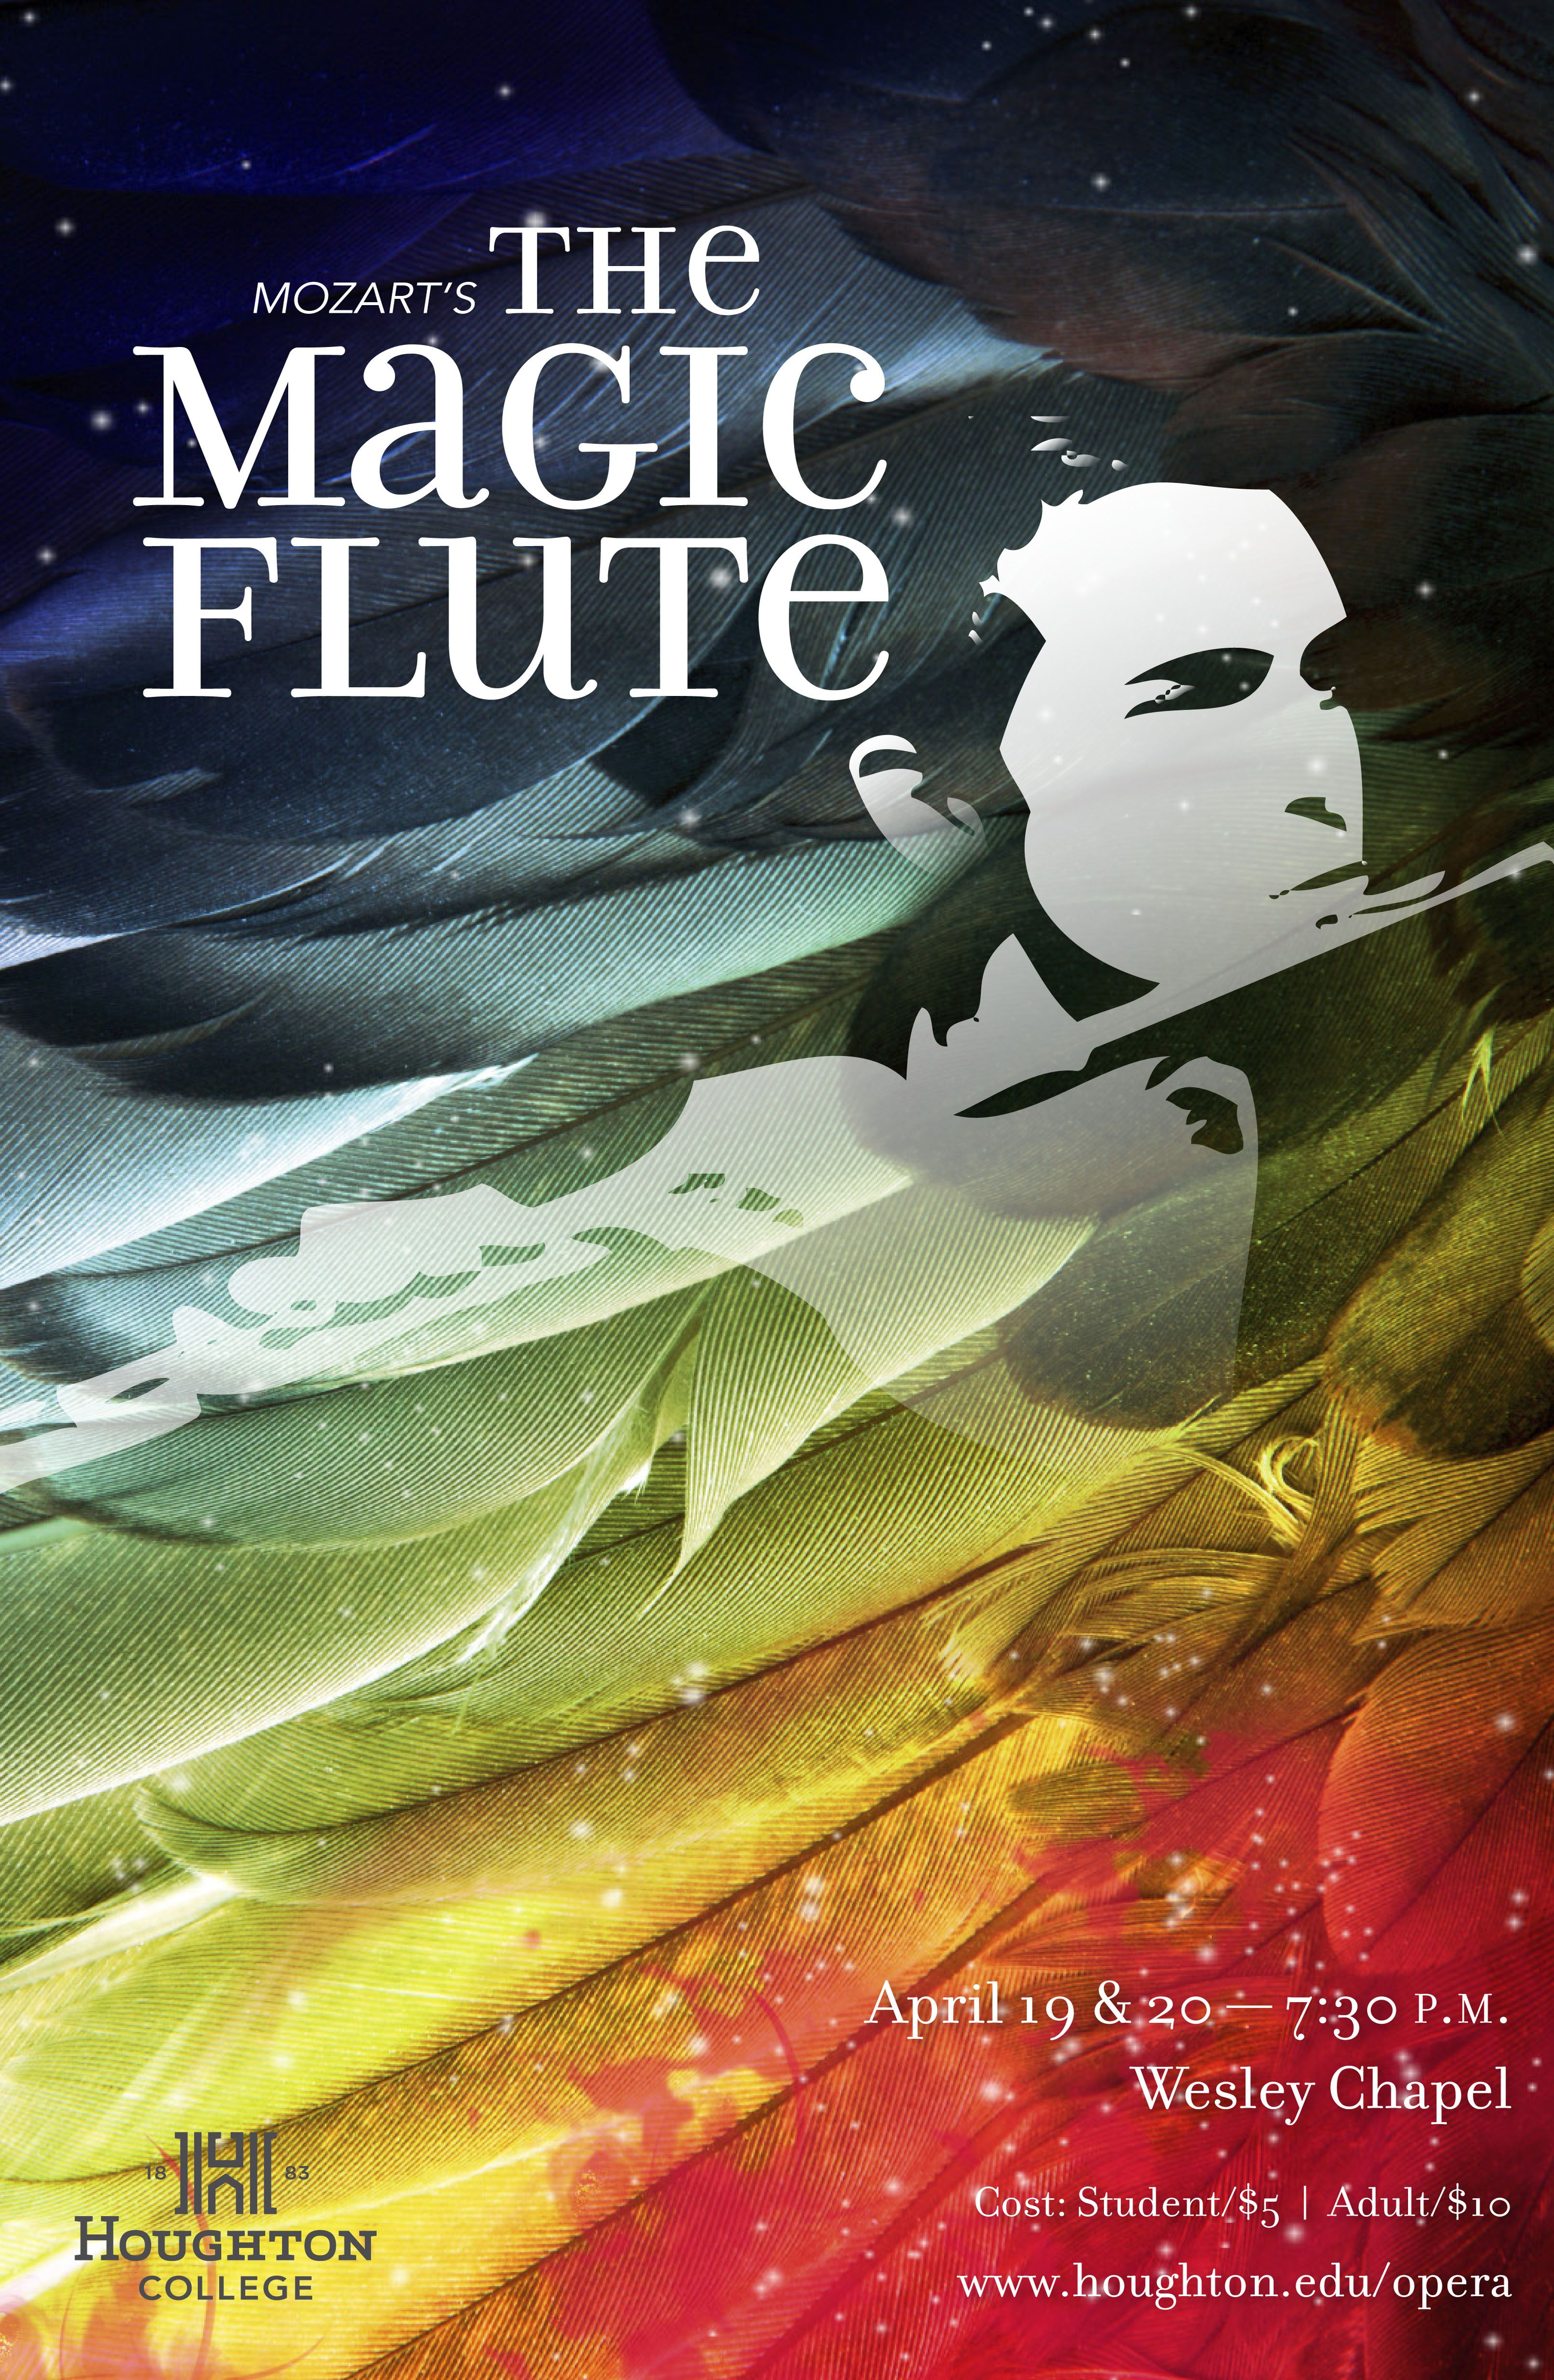 Calendar Events The Magic Flute Opera Concert Posters